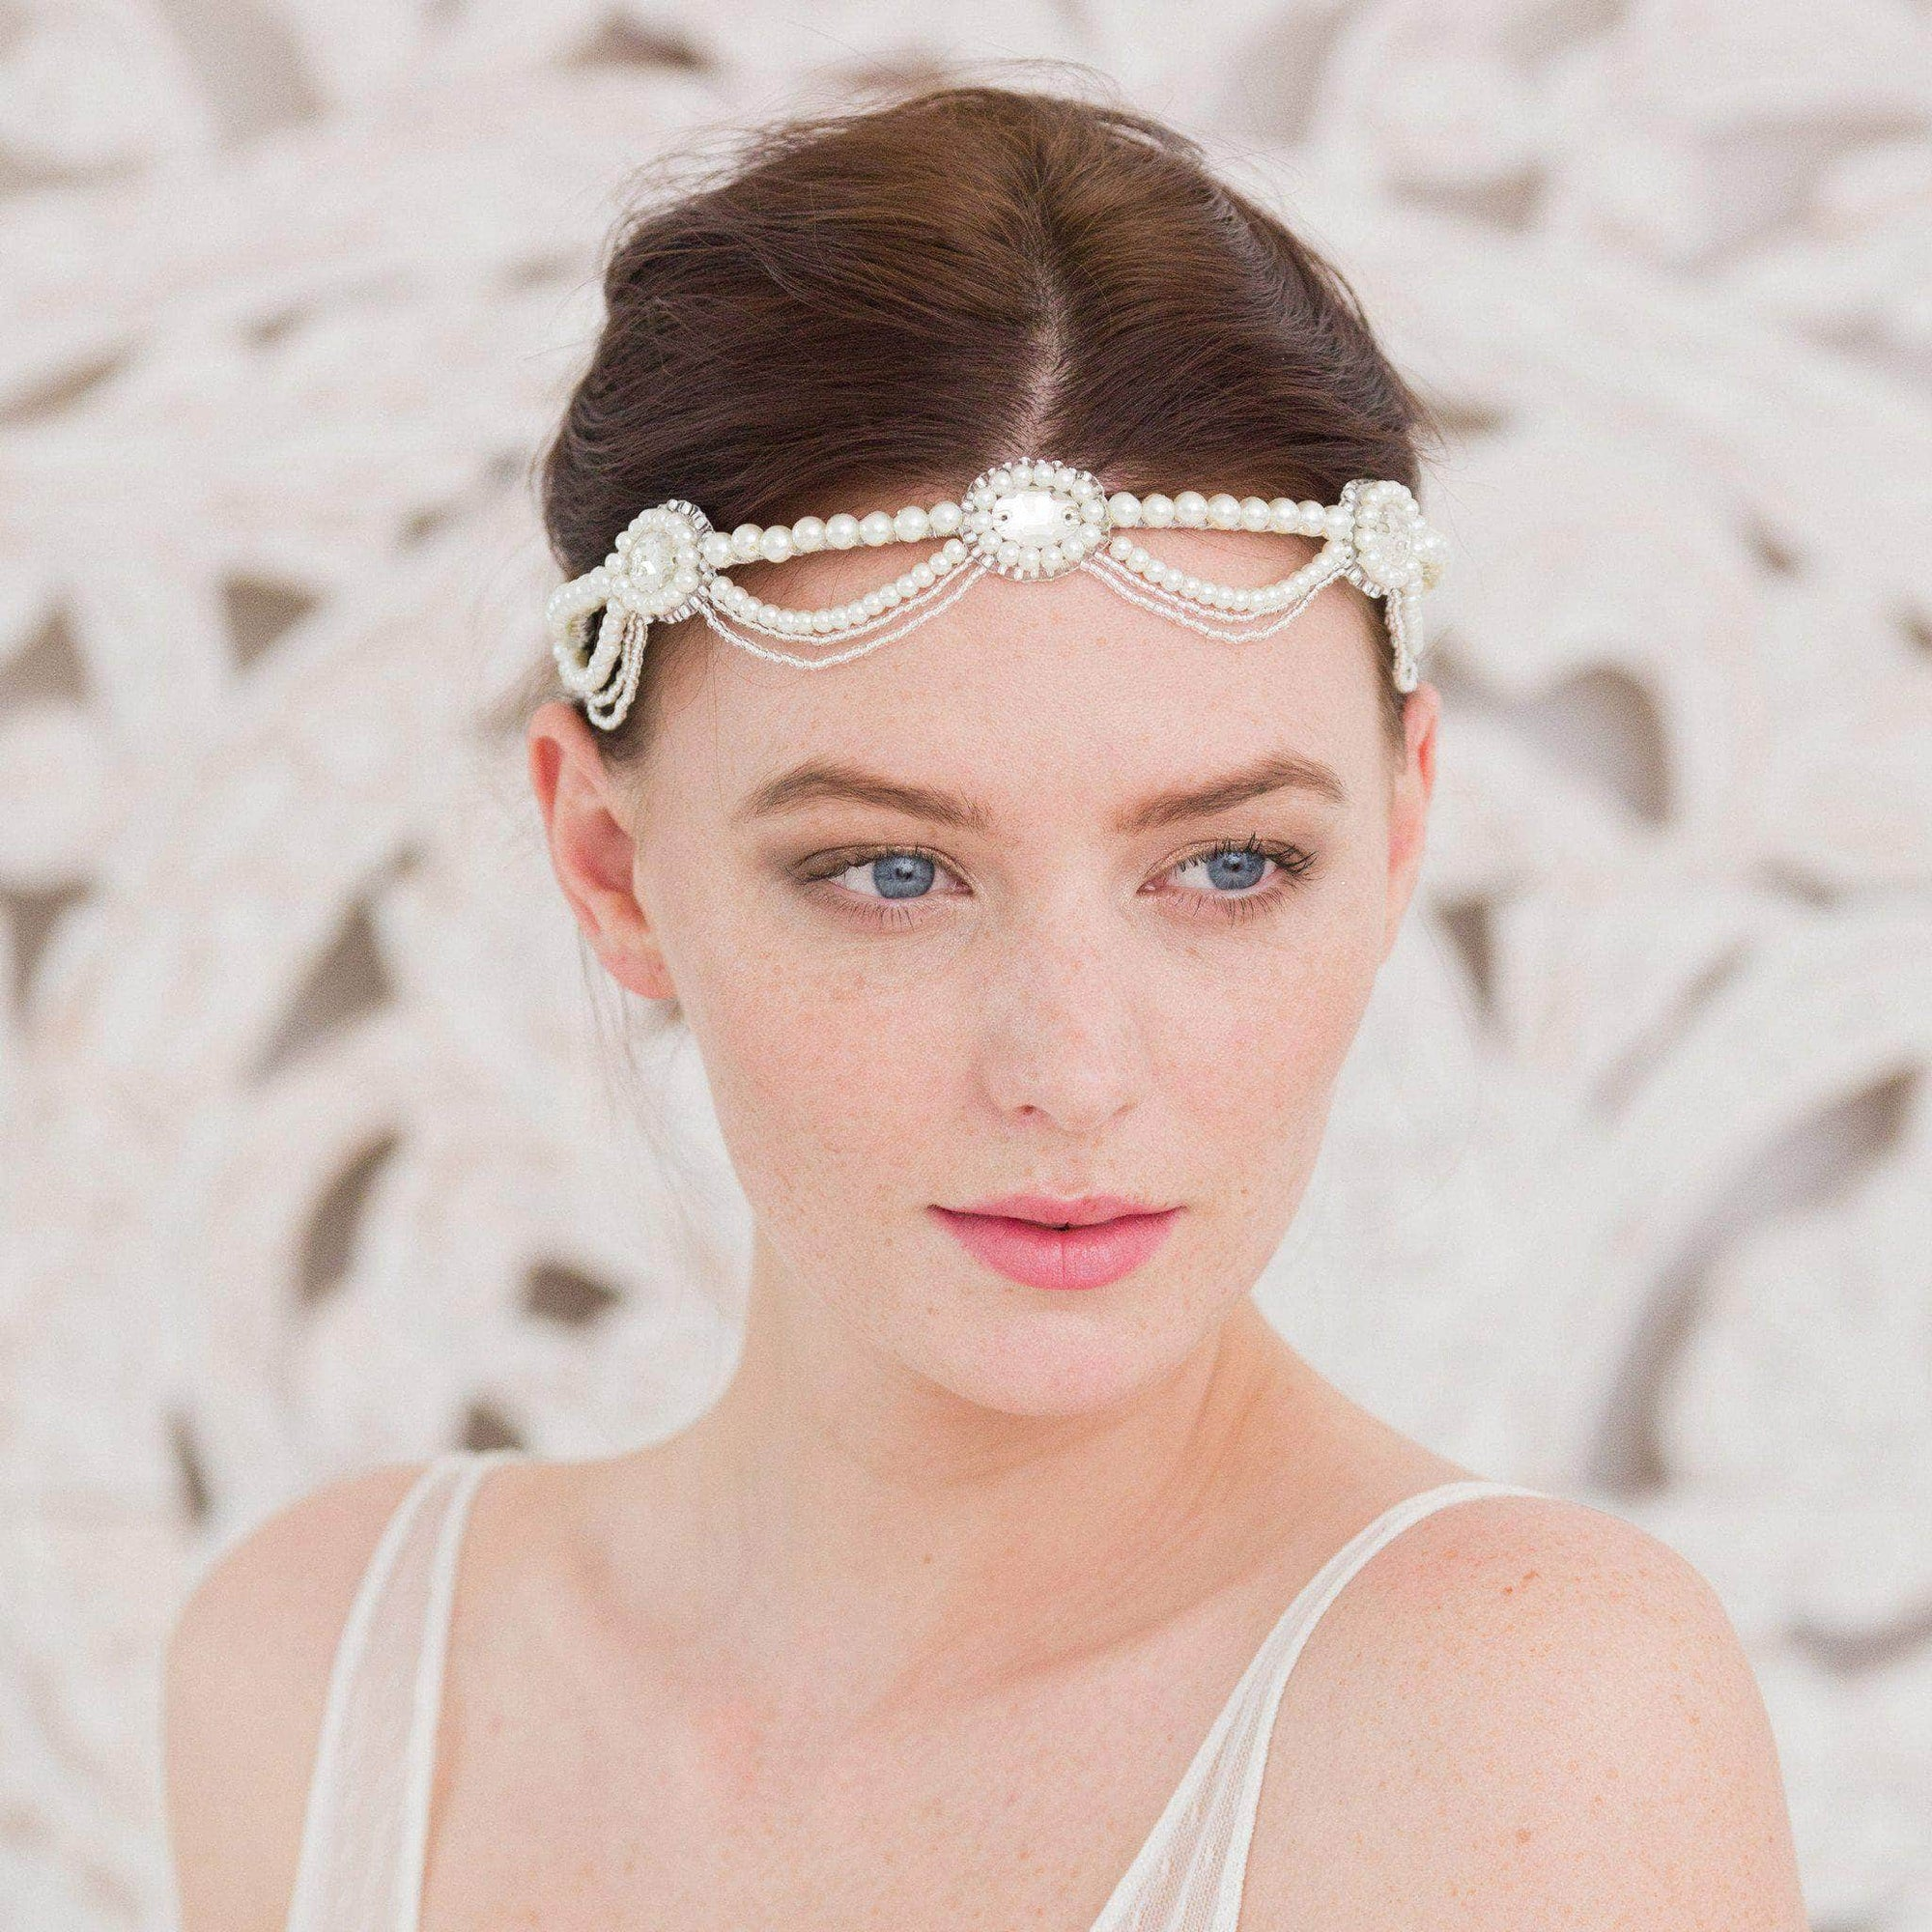 Wedding Headband Silver Statement 1920s style pearl wedding headband - 'Perle'